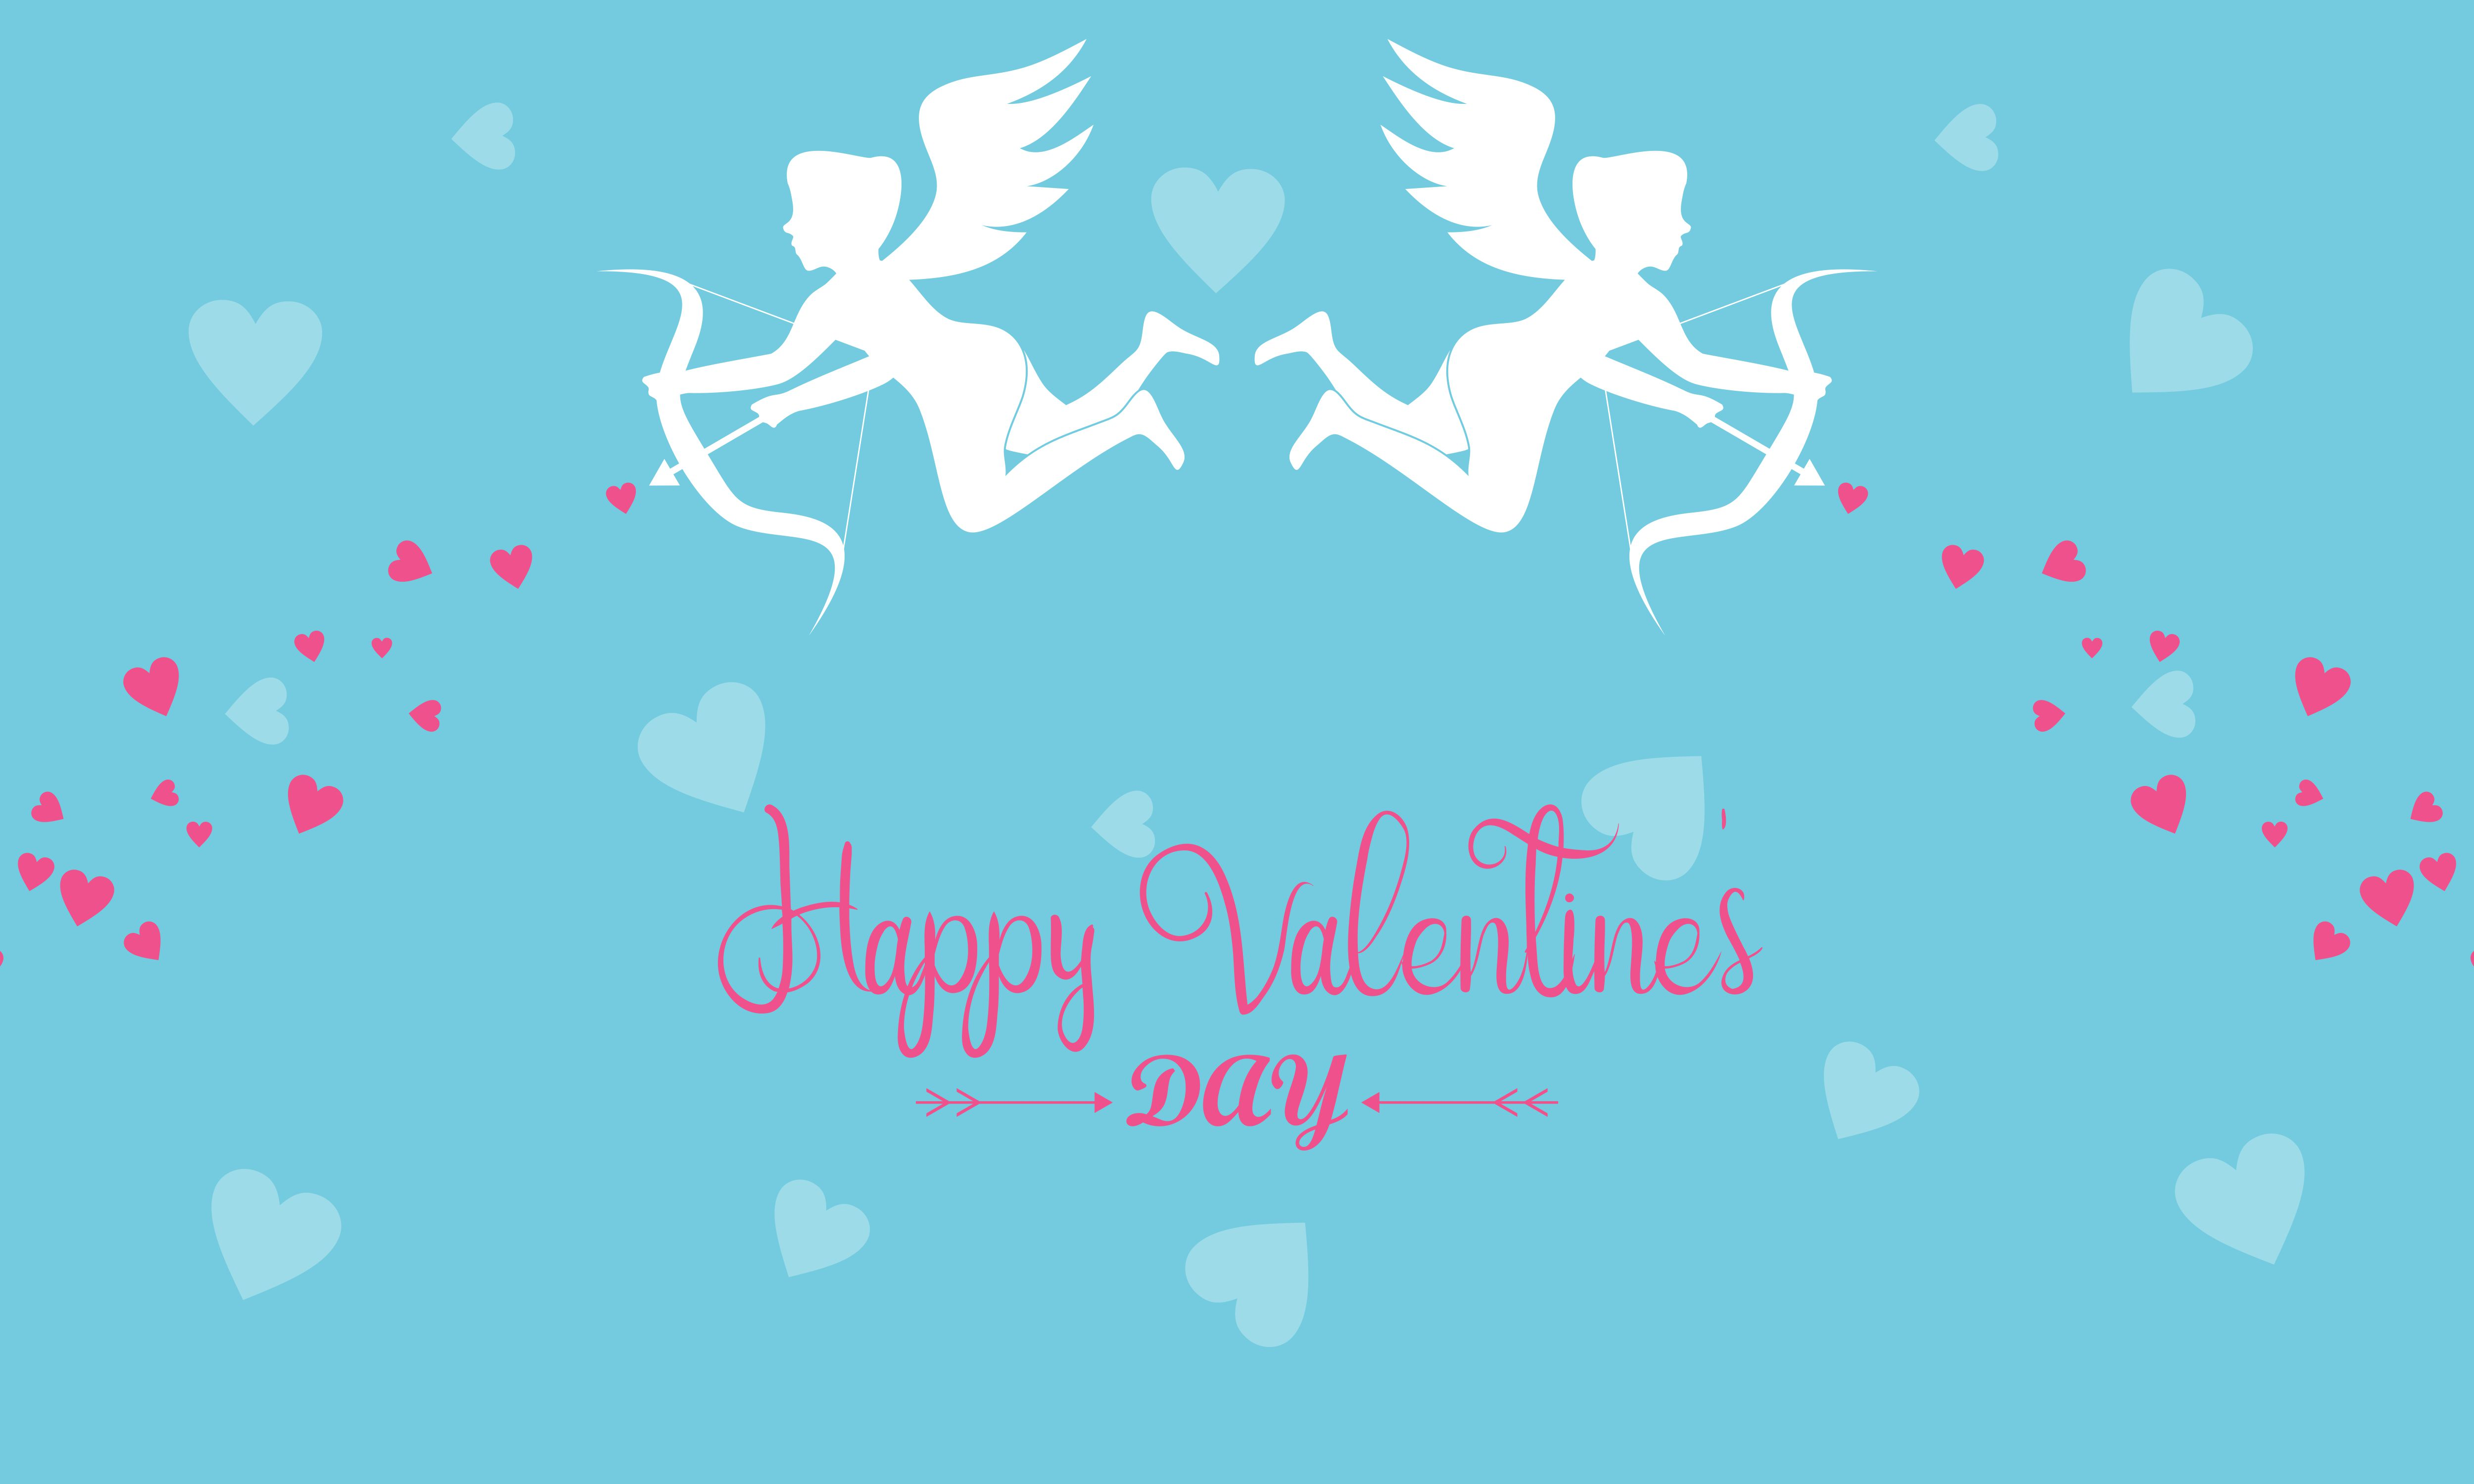 Download Free Happy Valentines Day Cupid Or Angel Logo Graphic By Deemka for Cricut Explore, Silhouette and other cutting machines.